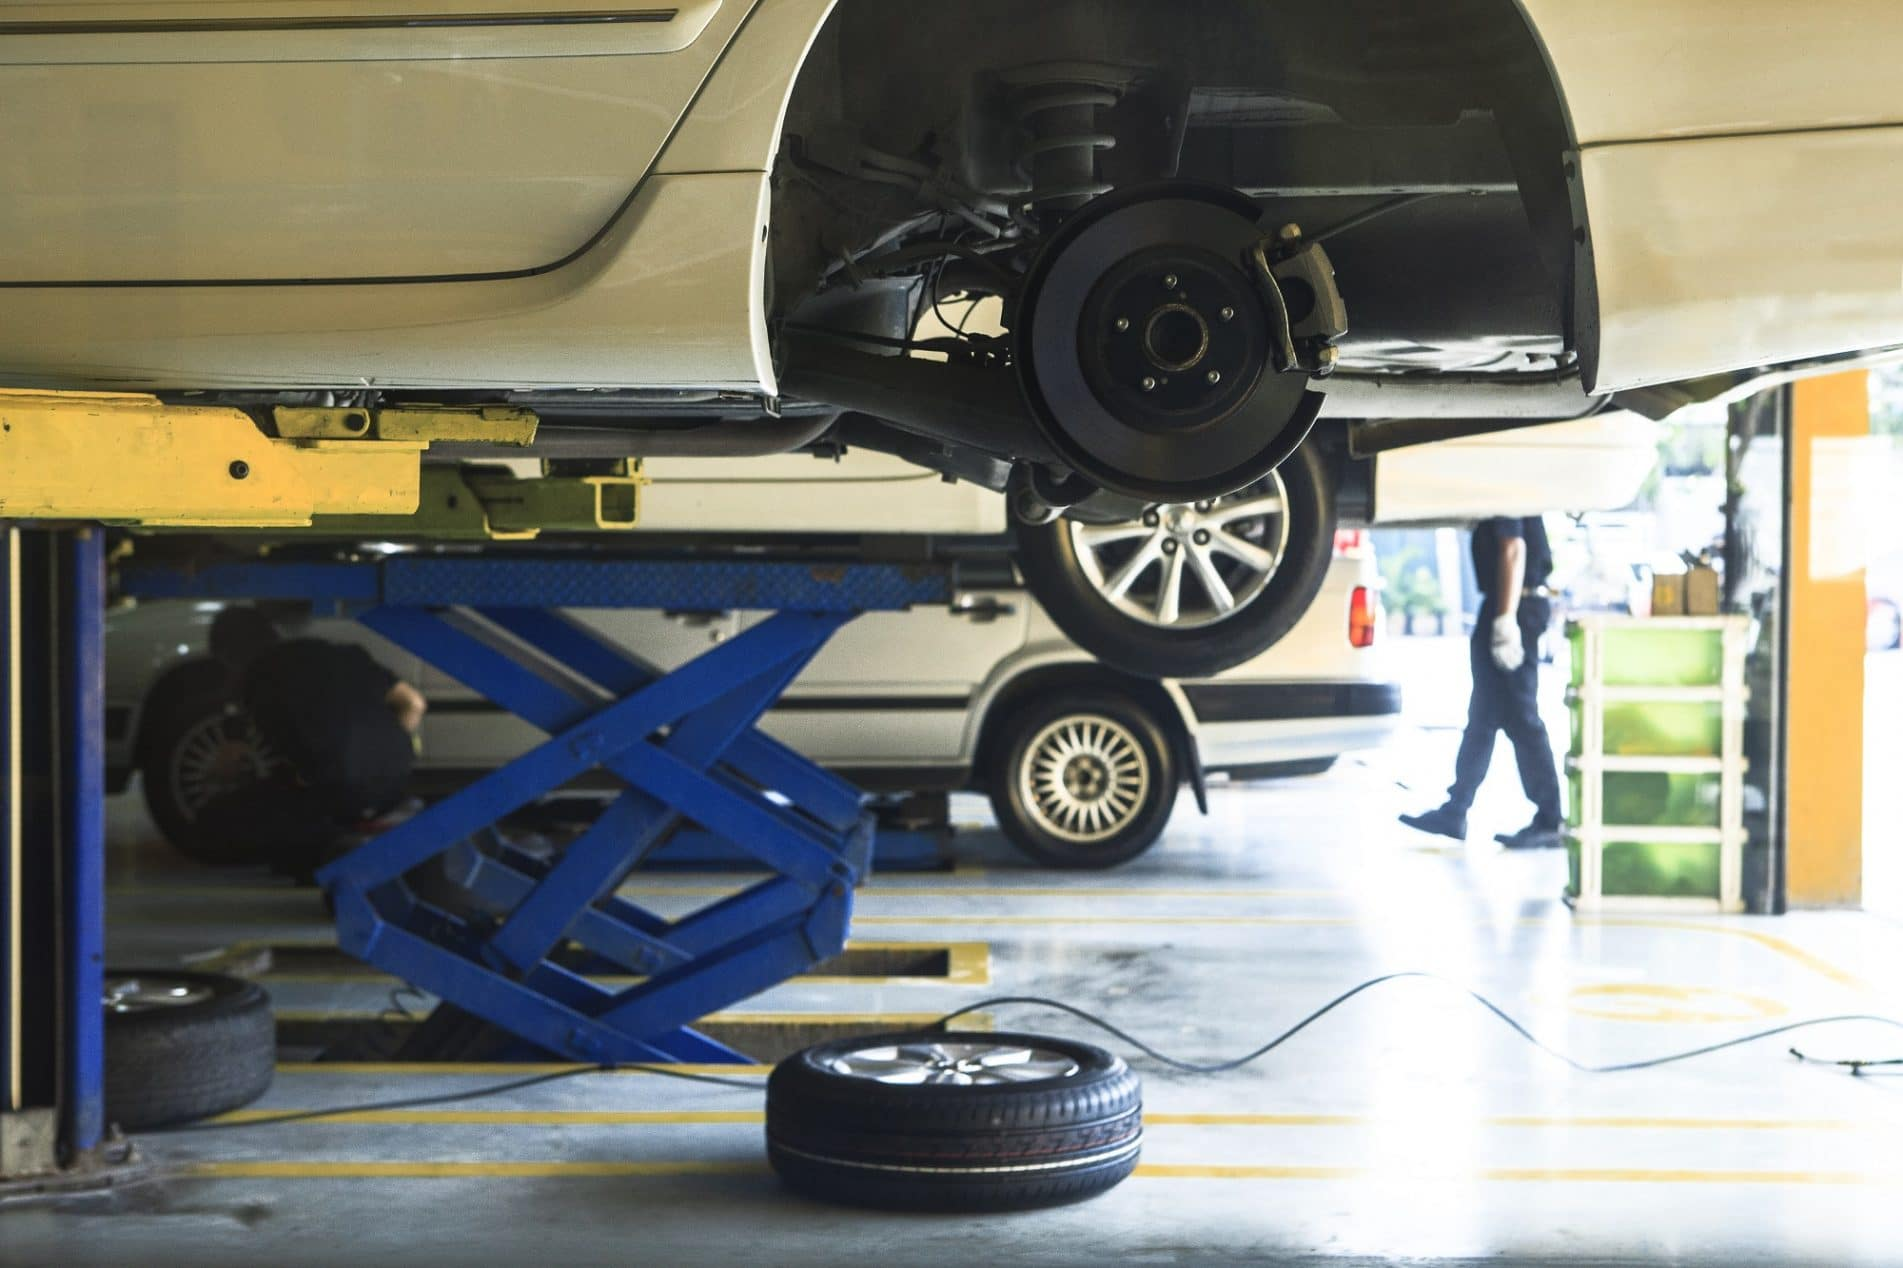 Car Wheel Suspension And Brake System Maintenance In Auto Service